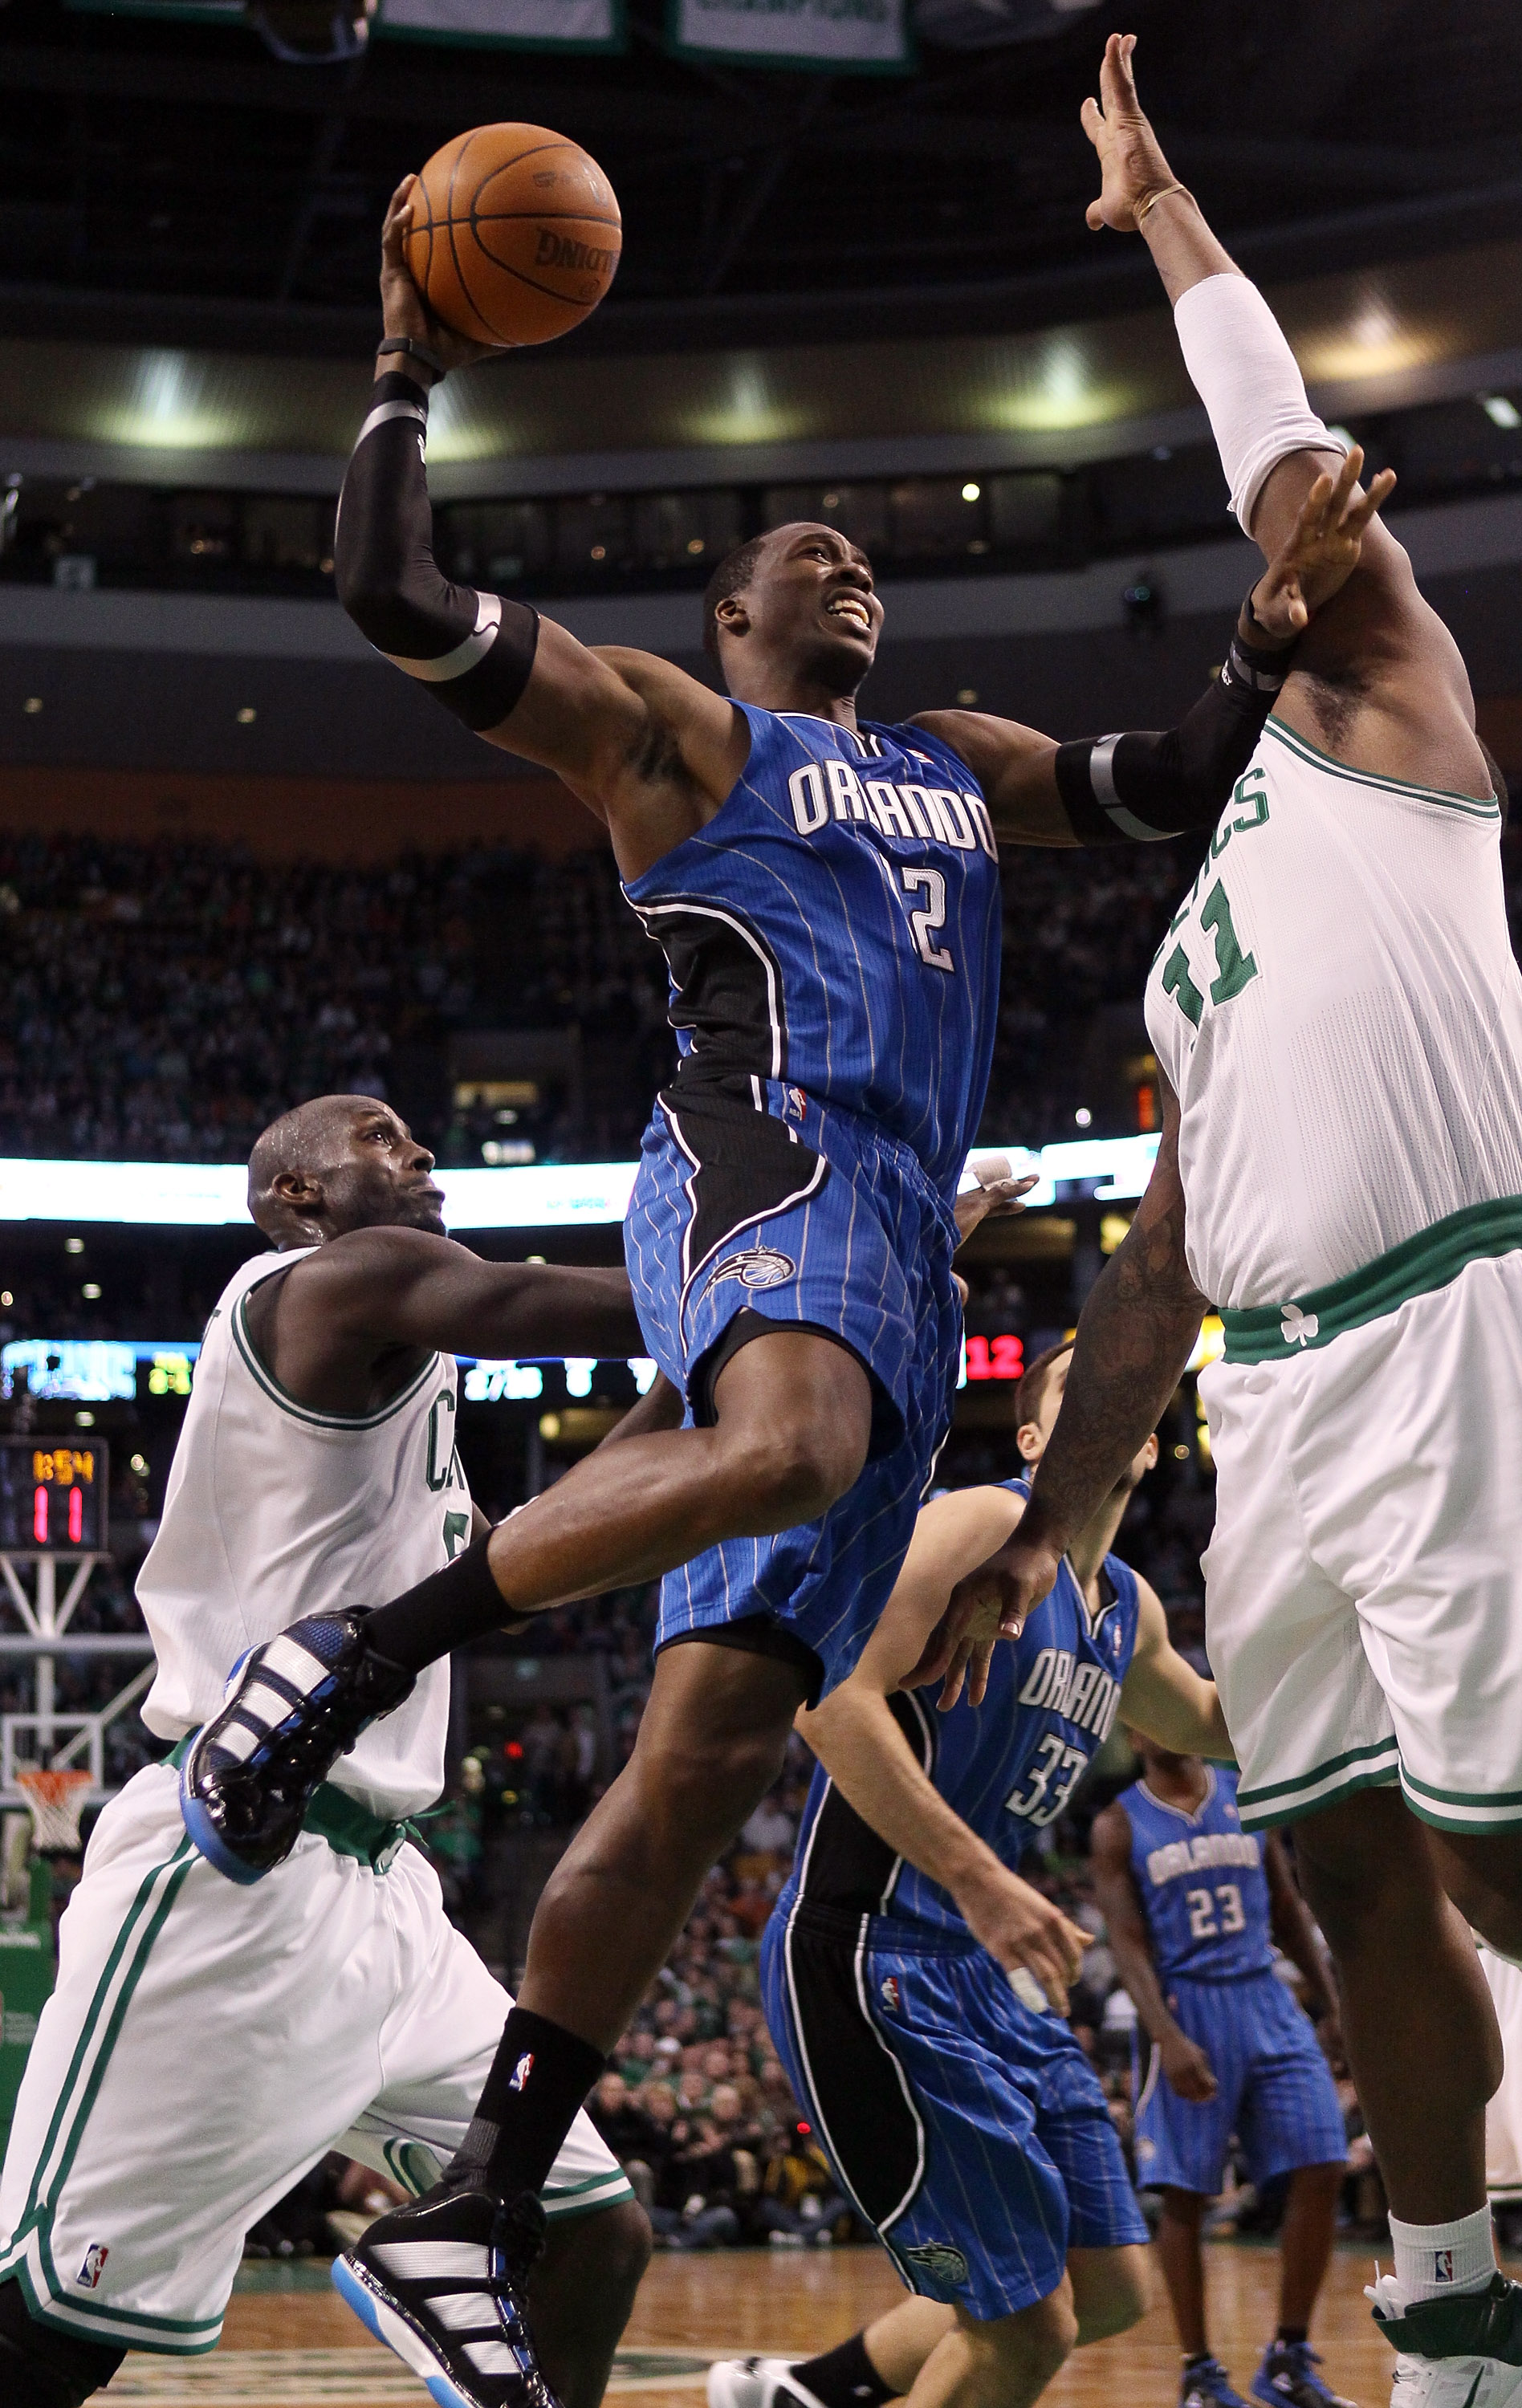 Dwight Howard Trade Rumors  10 Reasons He s Staying With the Orlando ... da1323689